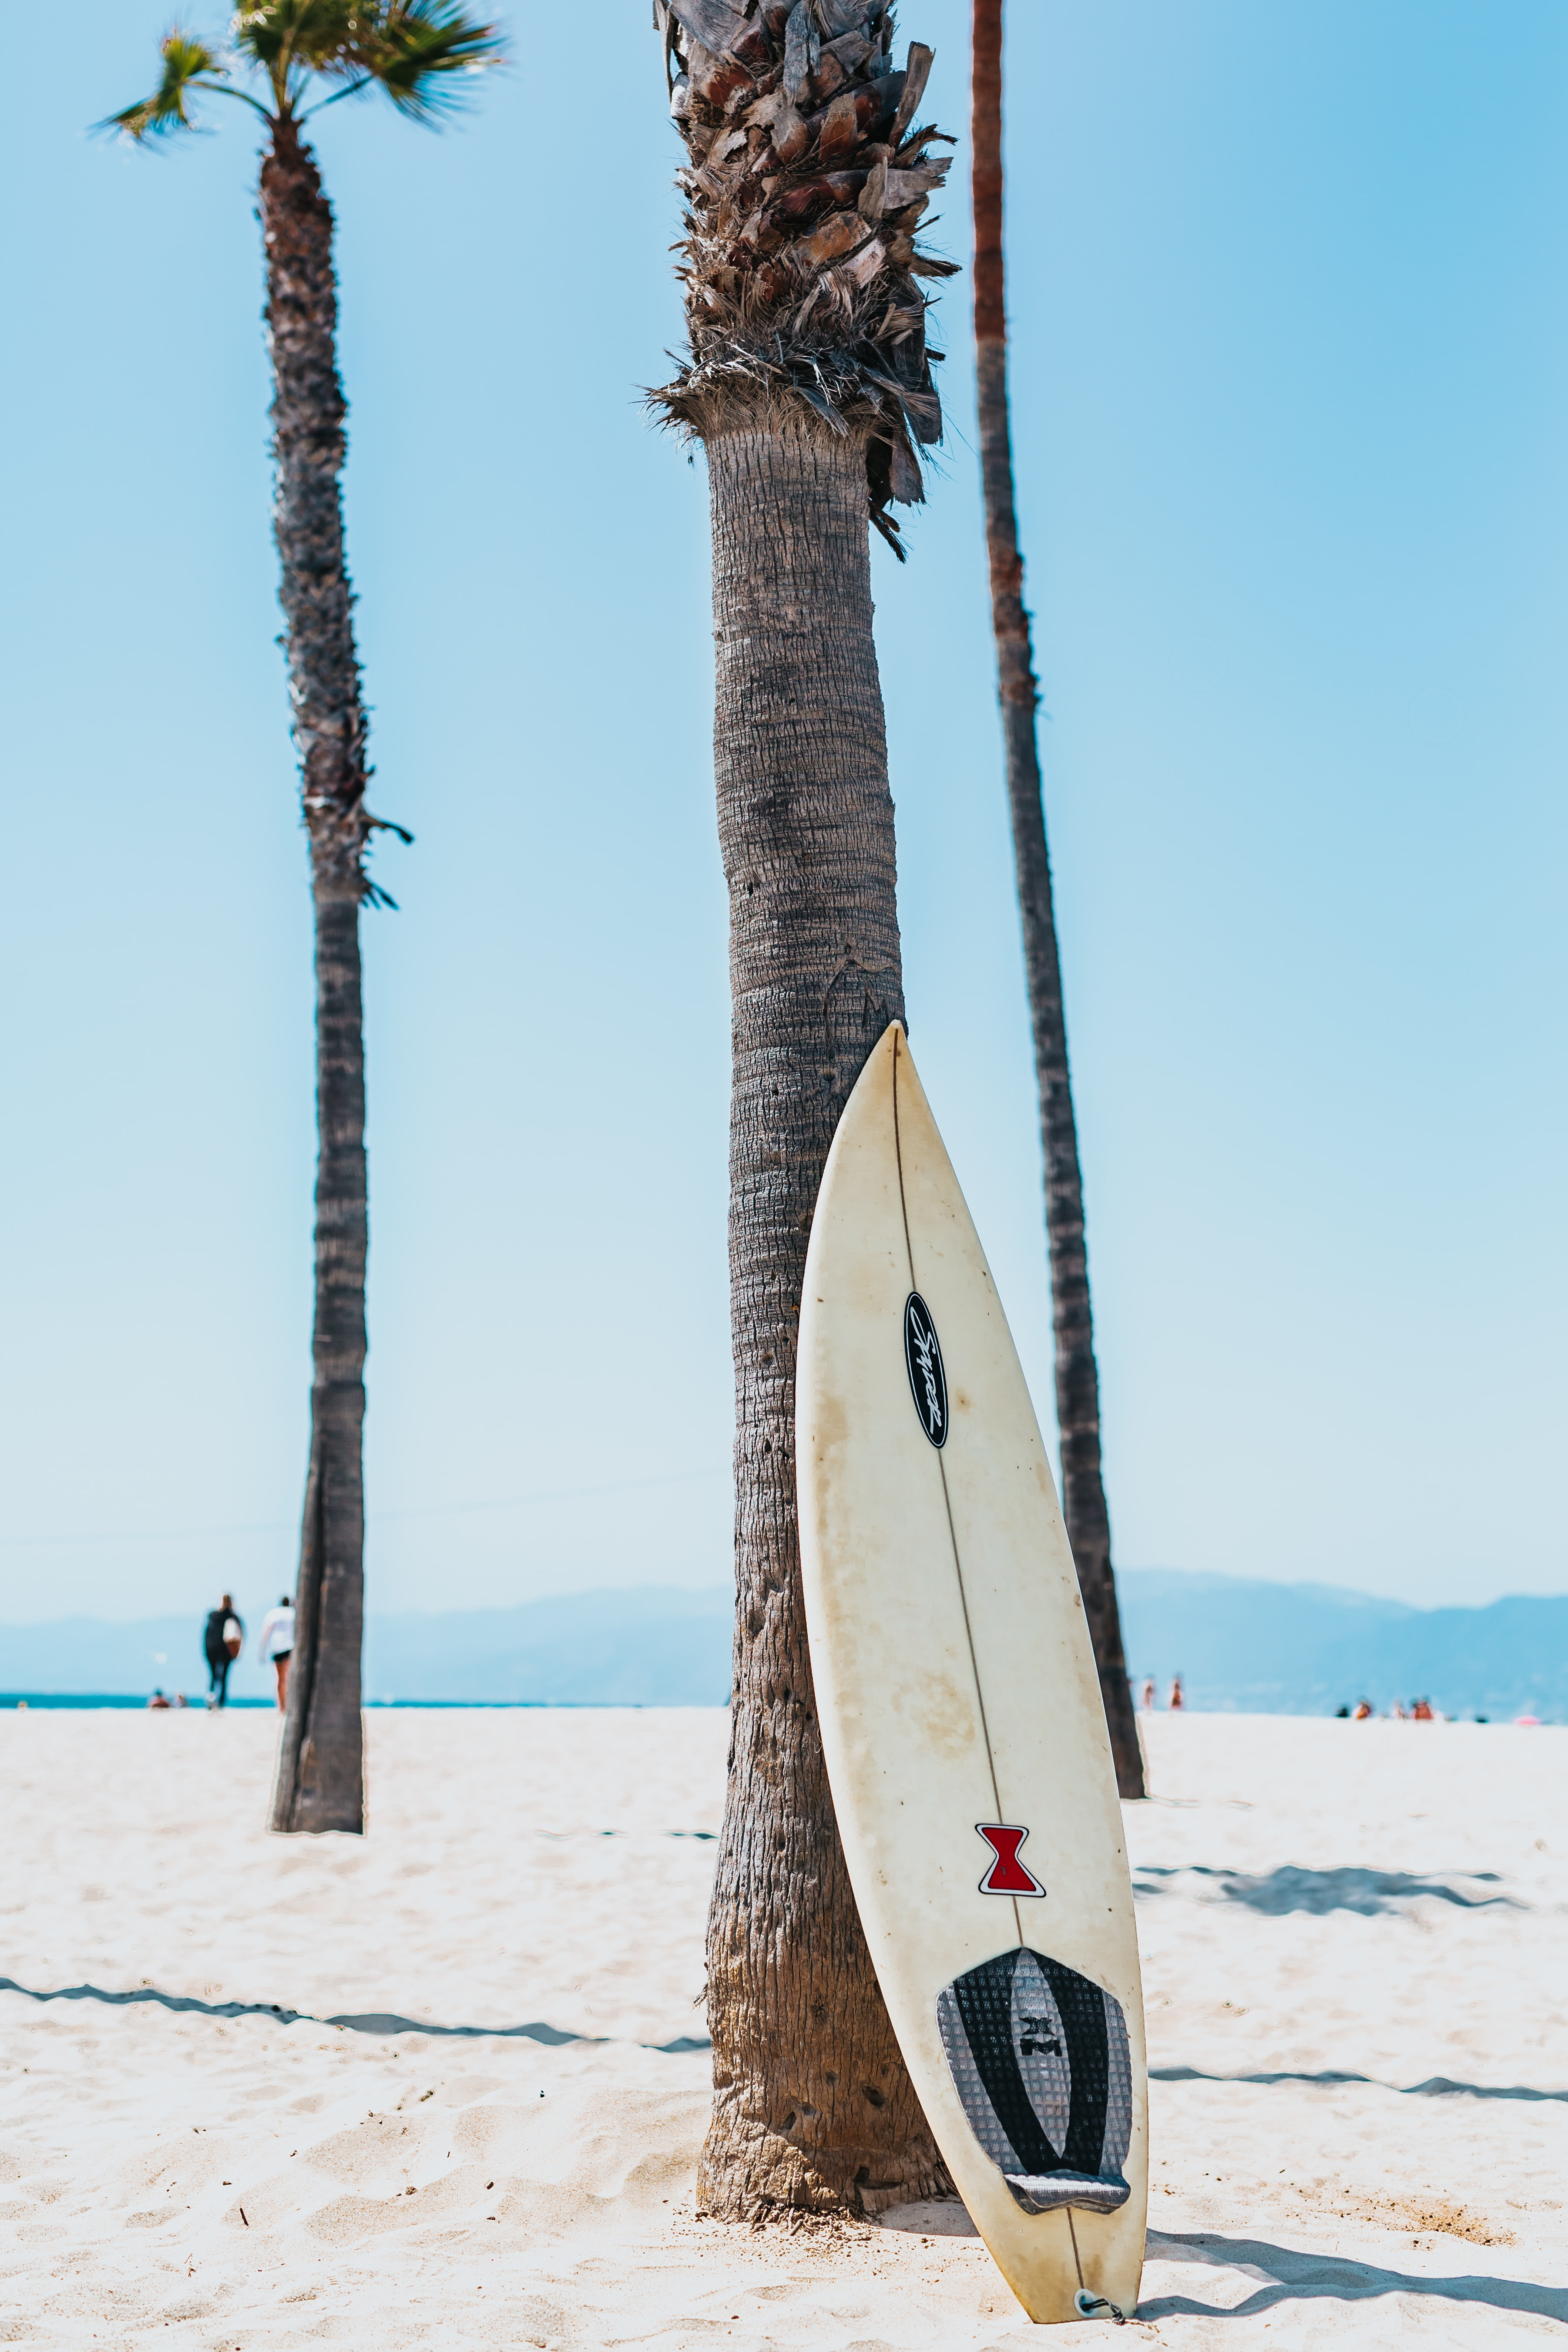 white and black surfboard leaning on gray Mexican palm tree